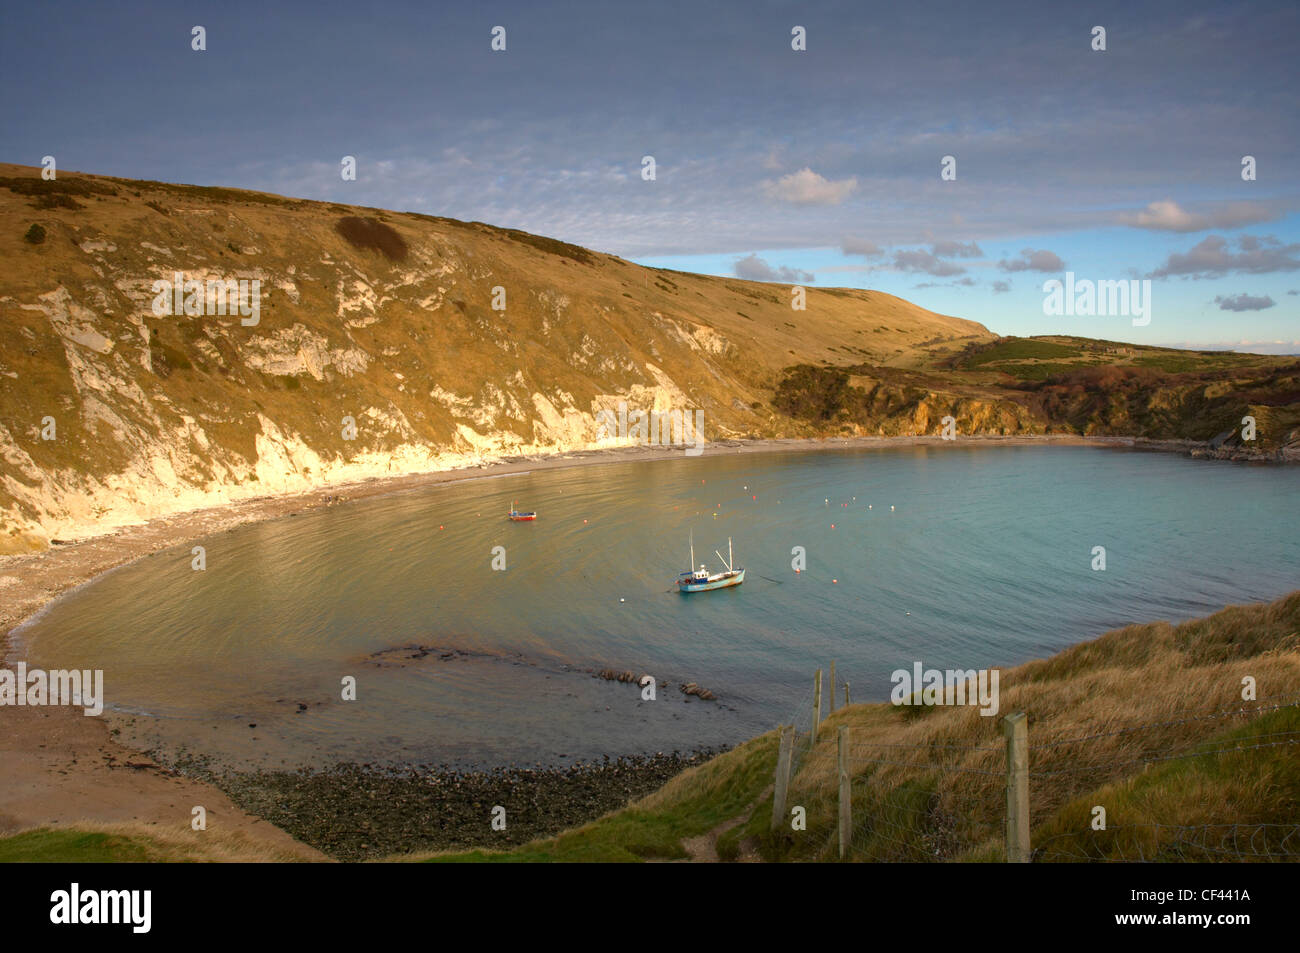 A fishing trawler anchored in Lulworth Cove on a bright winter day. - Stock Image